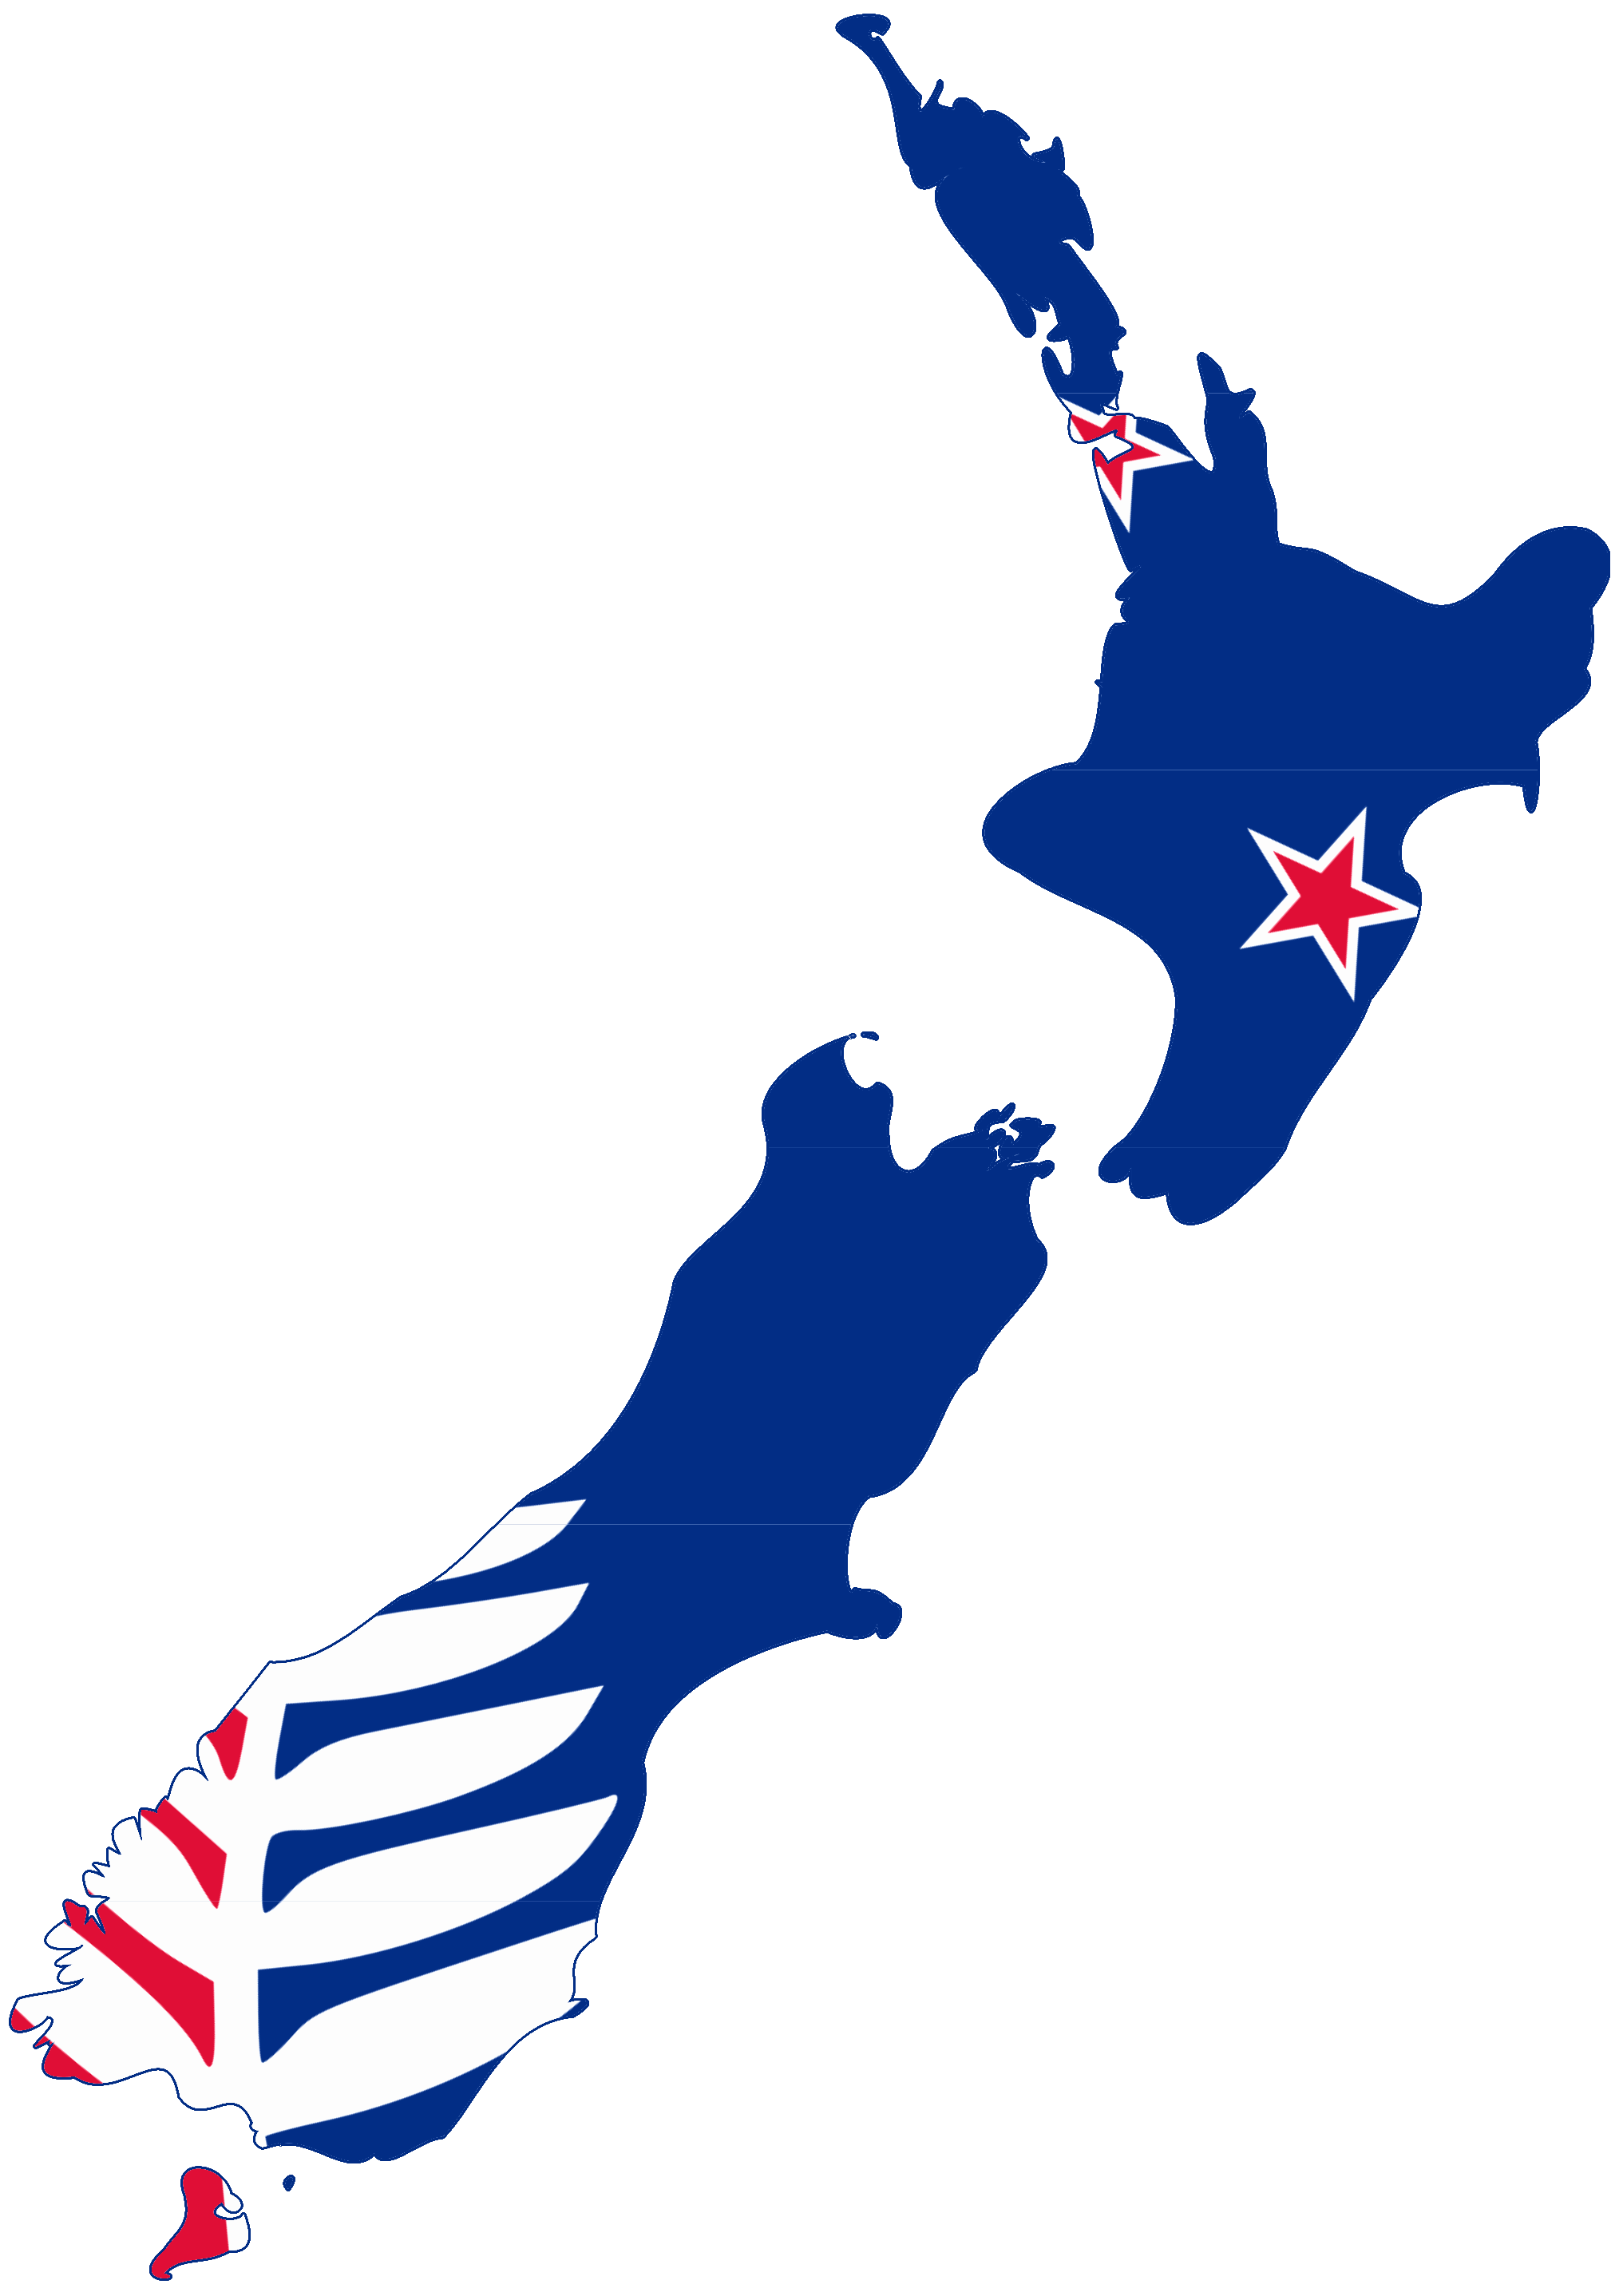 File:Flag map of New Zealand (Kyle Lockwood Proposal).png - New Zealand PNG